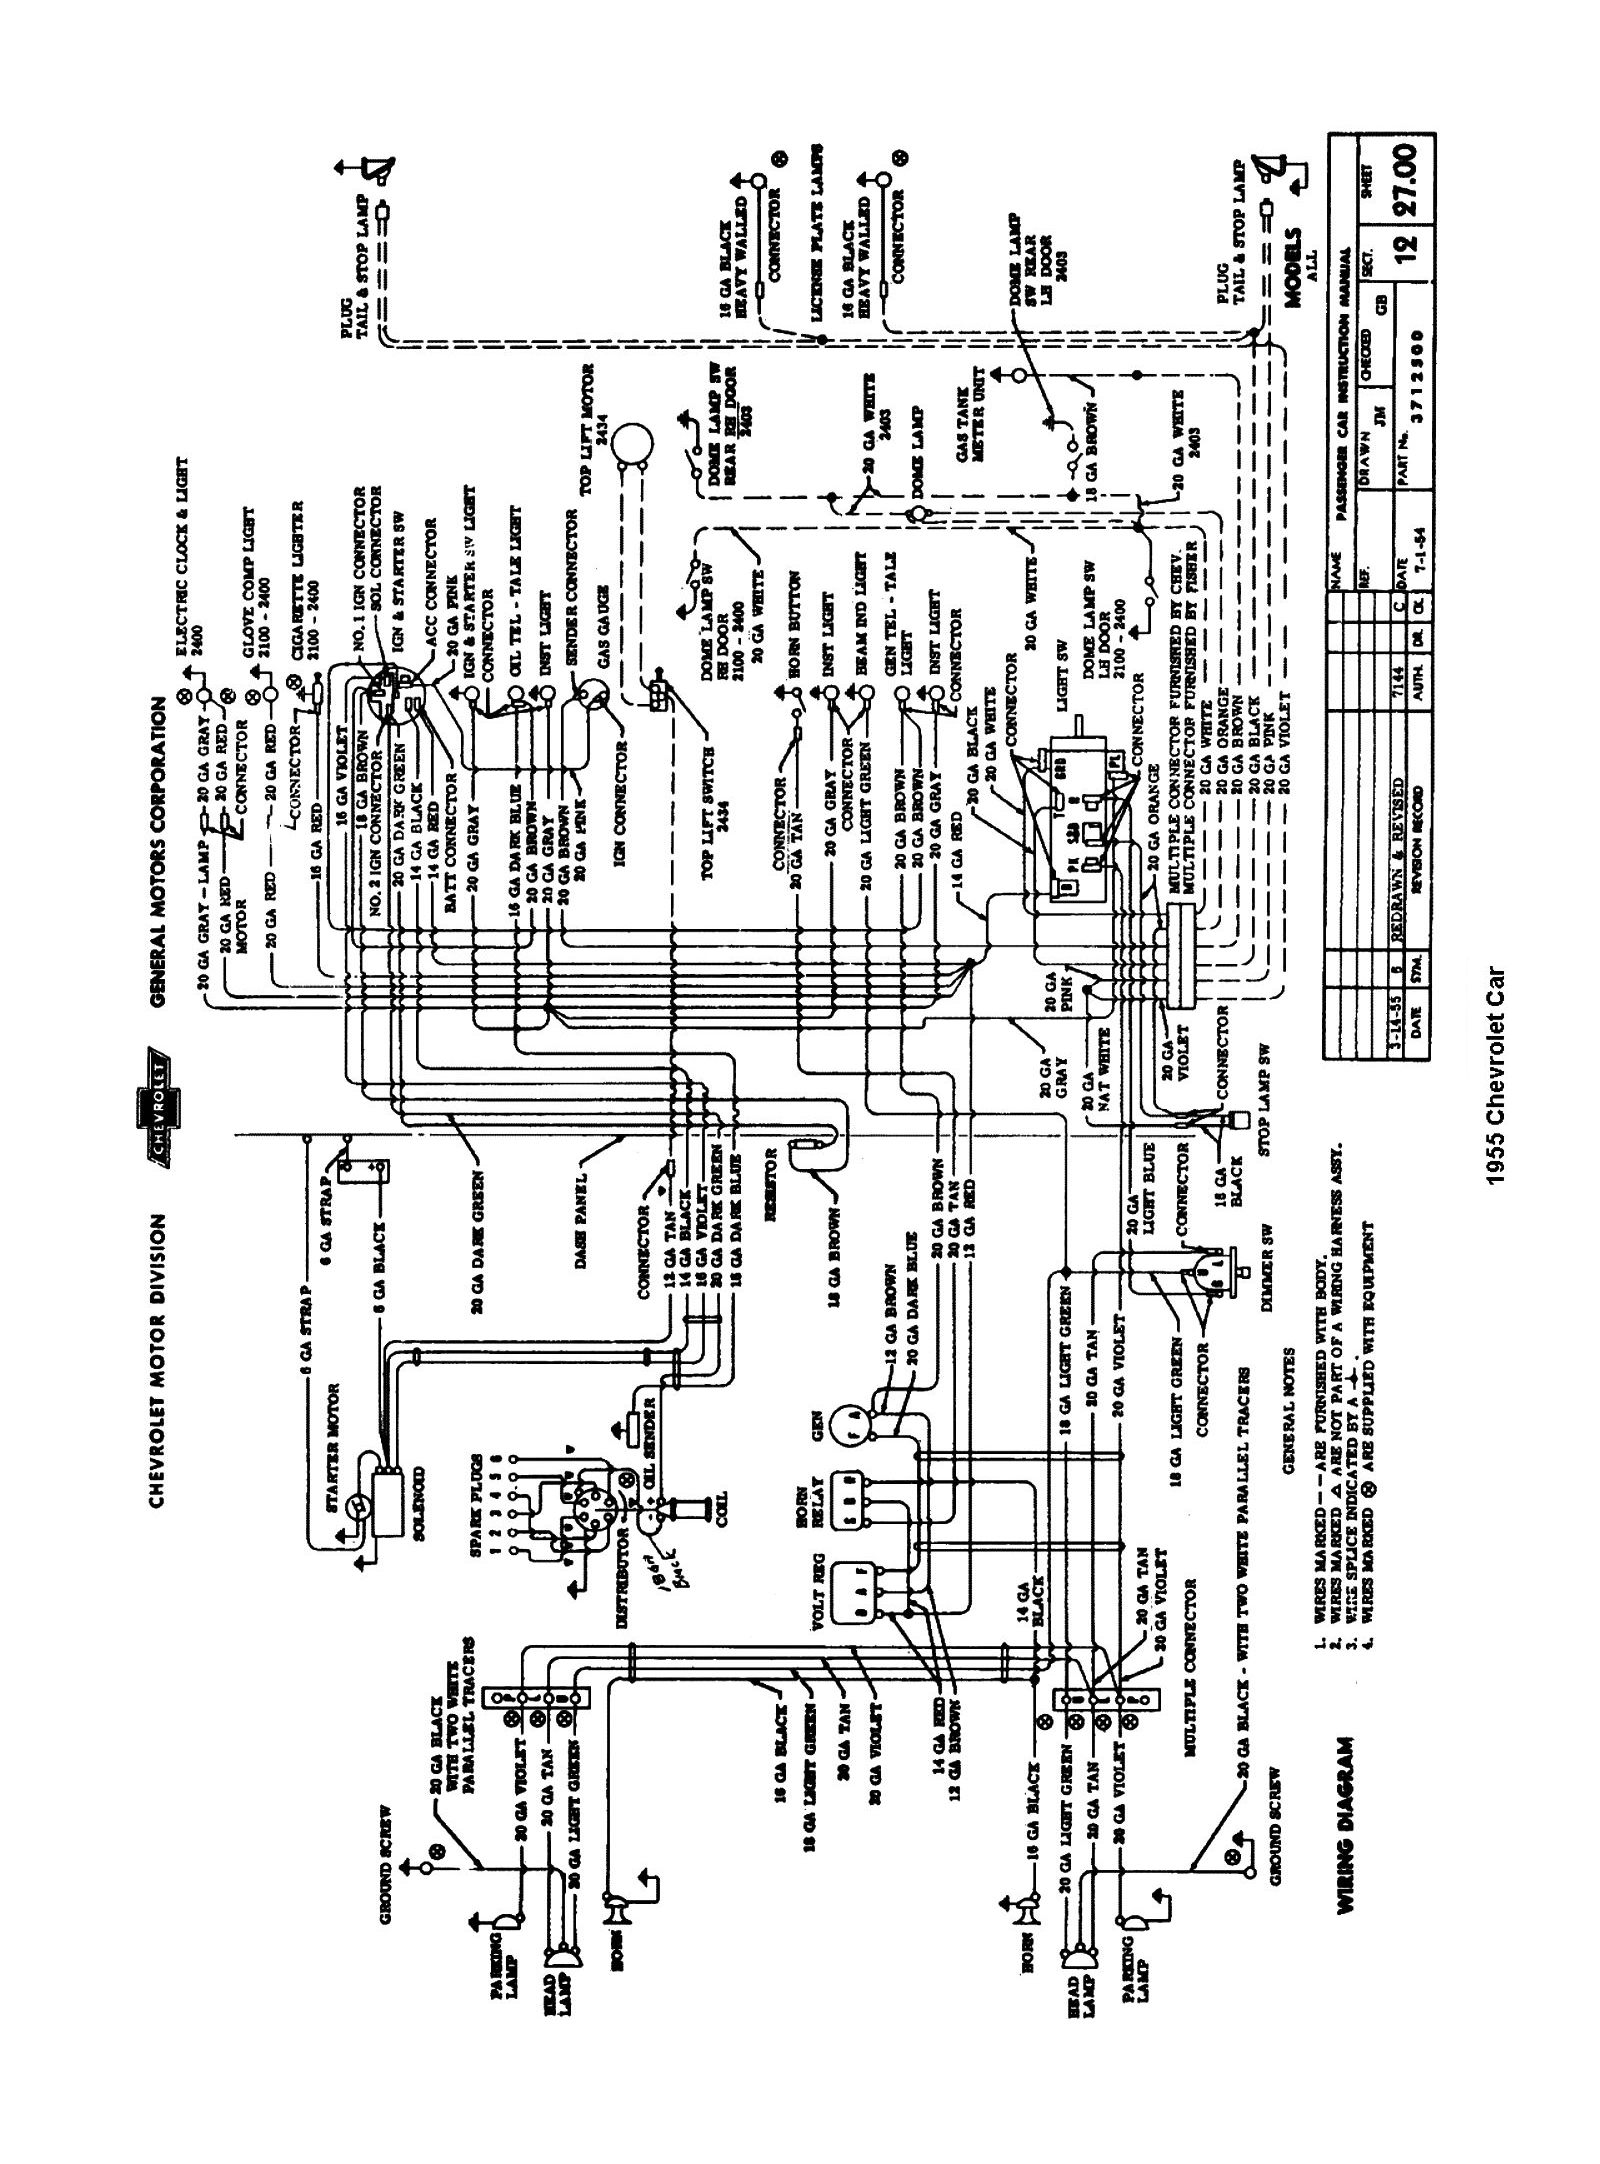 55car1 wiring diagram steering 1955 chevy car readingrat net 1956 chevy steering column wiring diagram at n-0.co